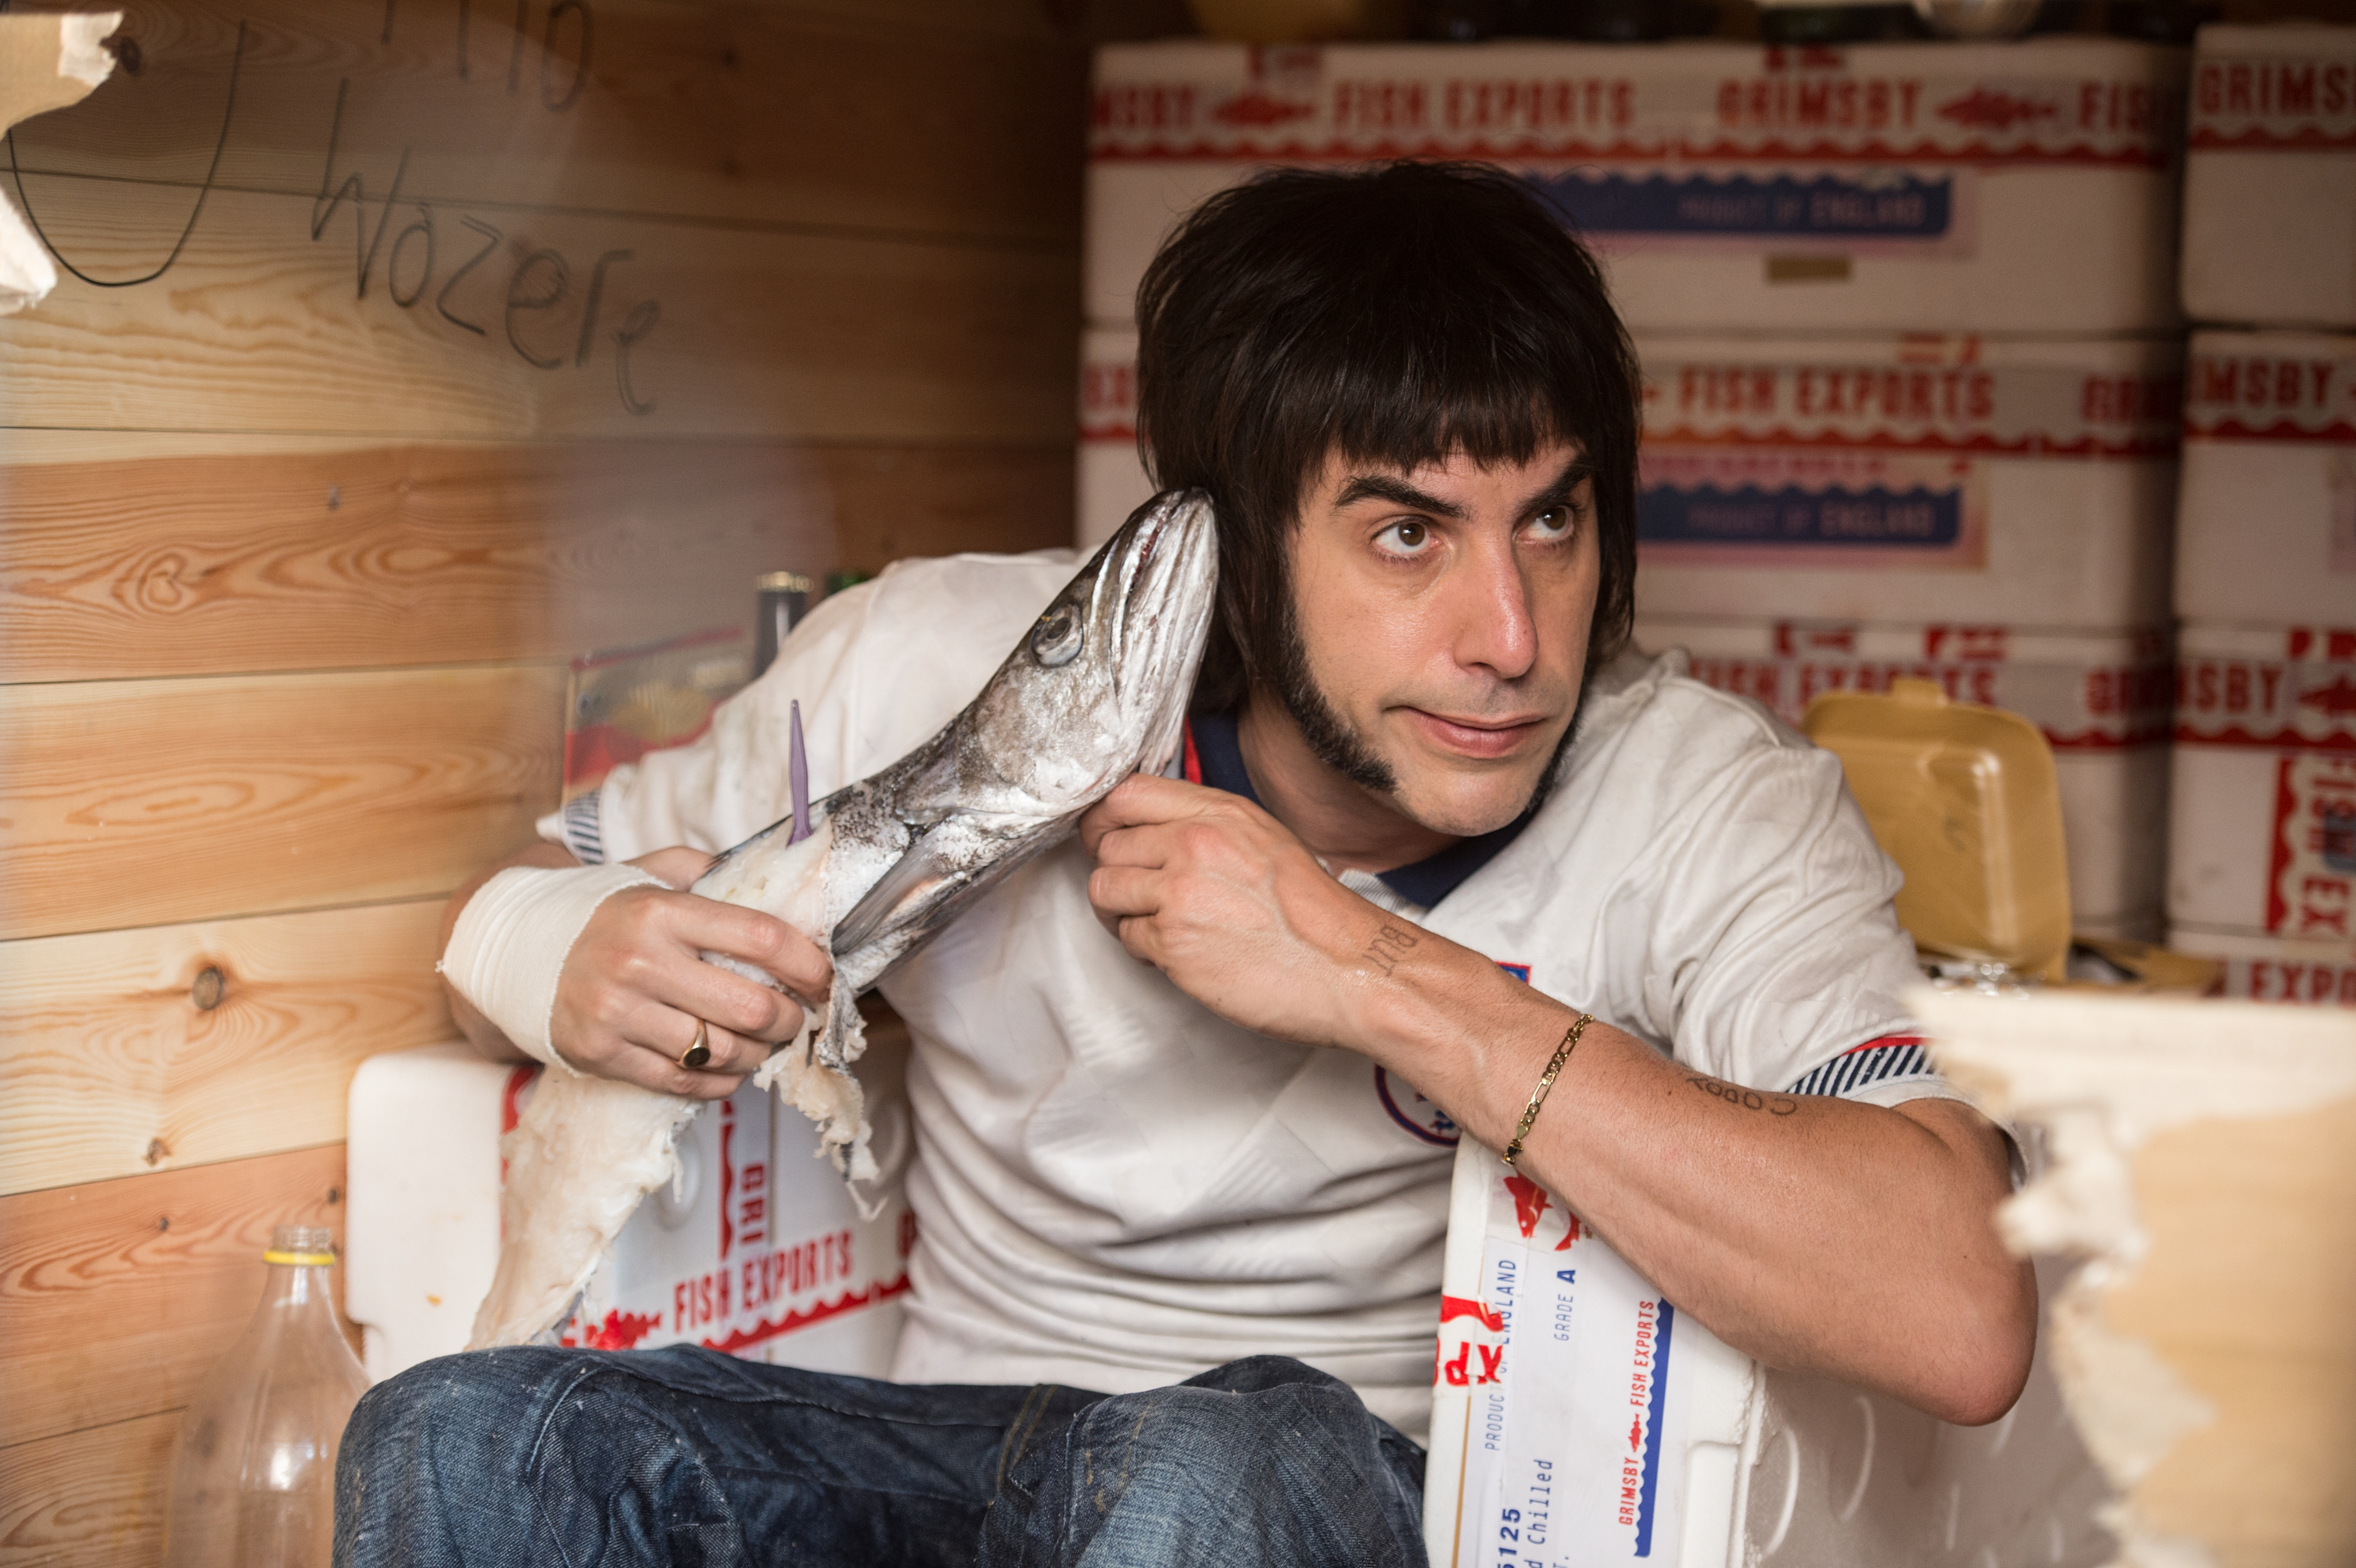 Sacha Baron Cohen as Norman  Nobby  Butcher in The Brothers Grimsby, 2016.